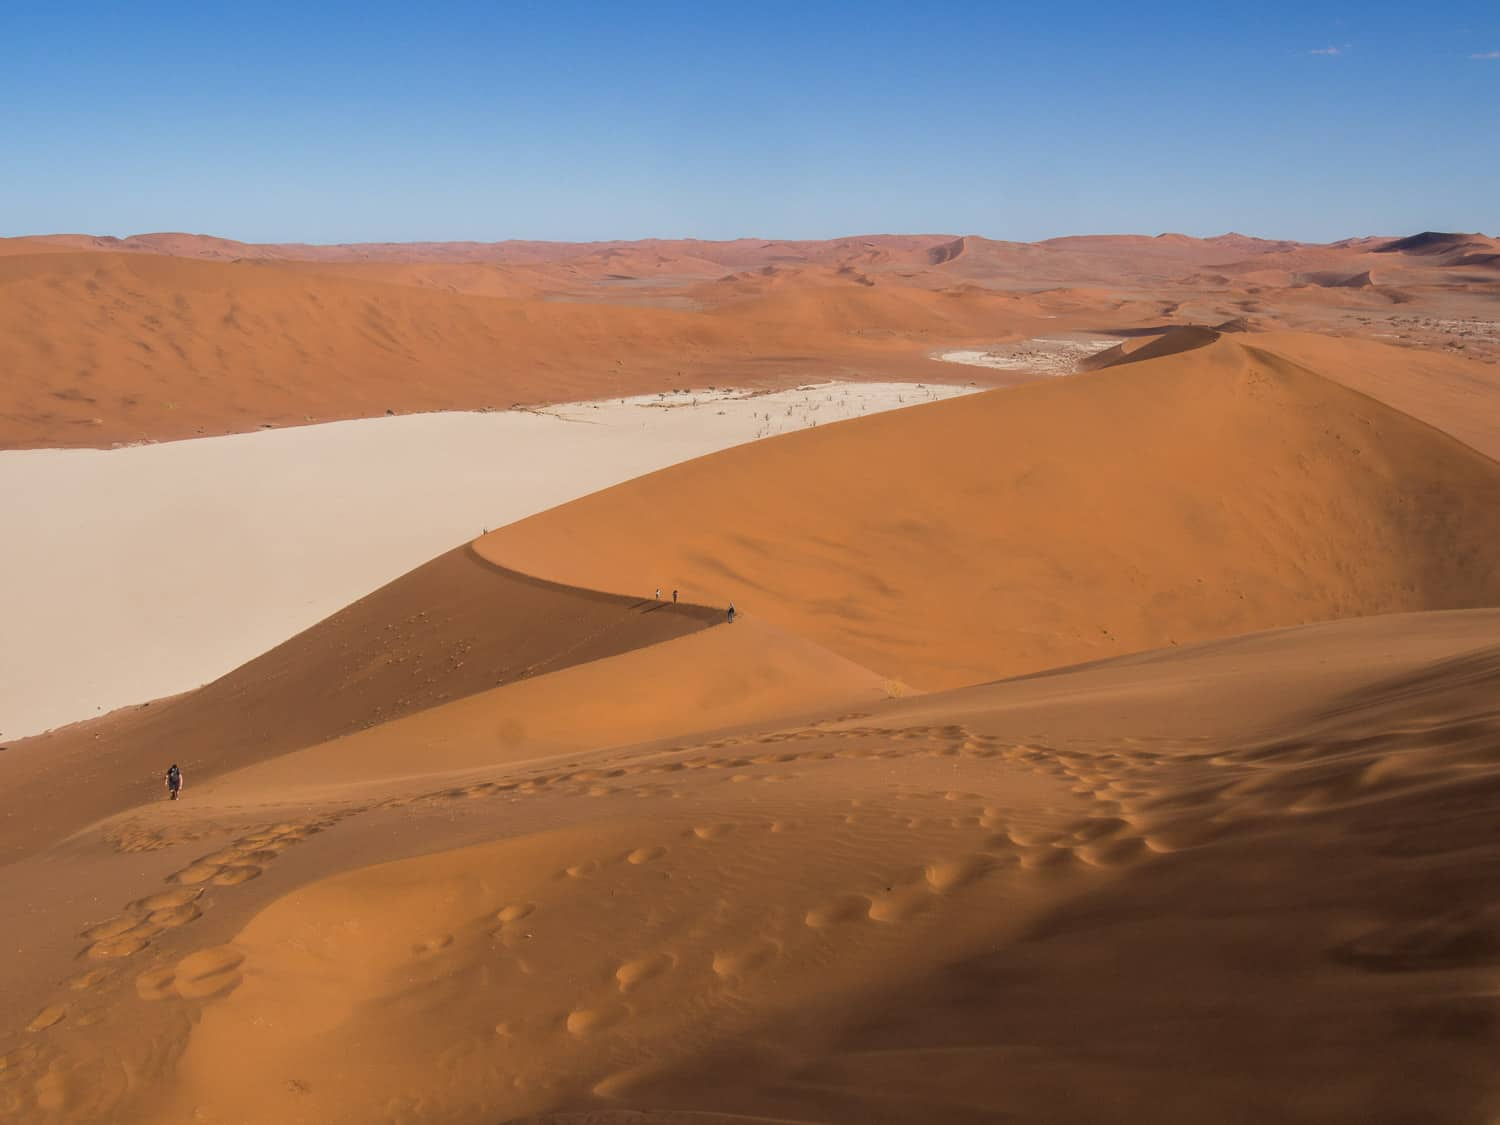 Planning a Namibia self drive trip including the sand dunes of Sossusvlei